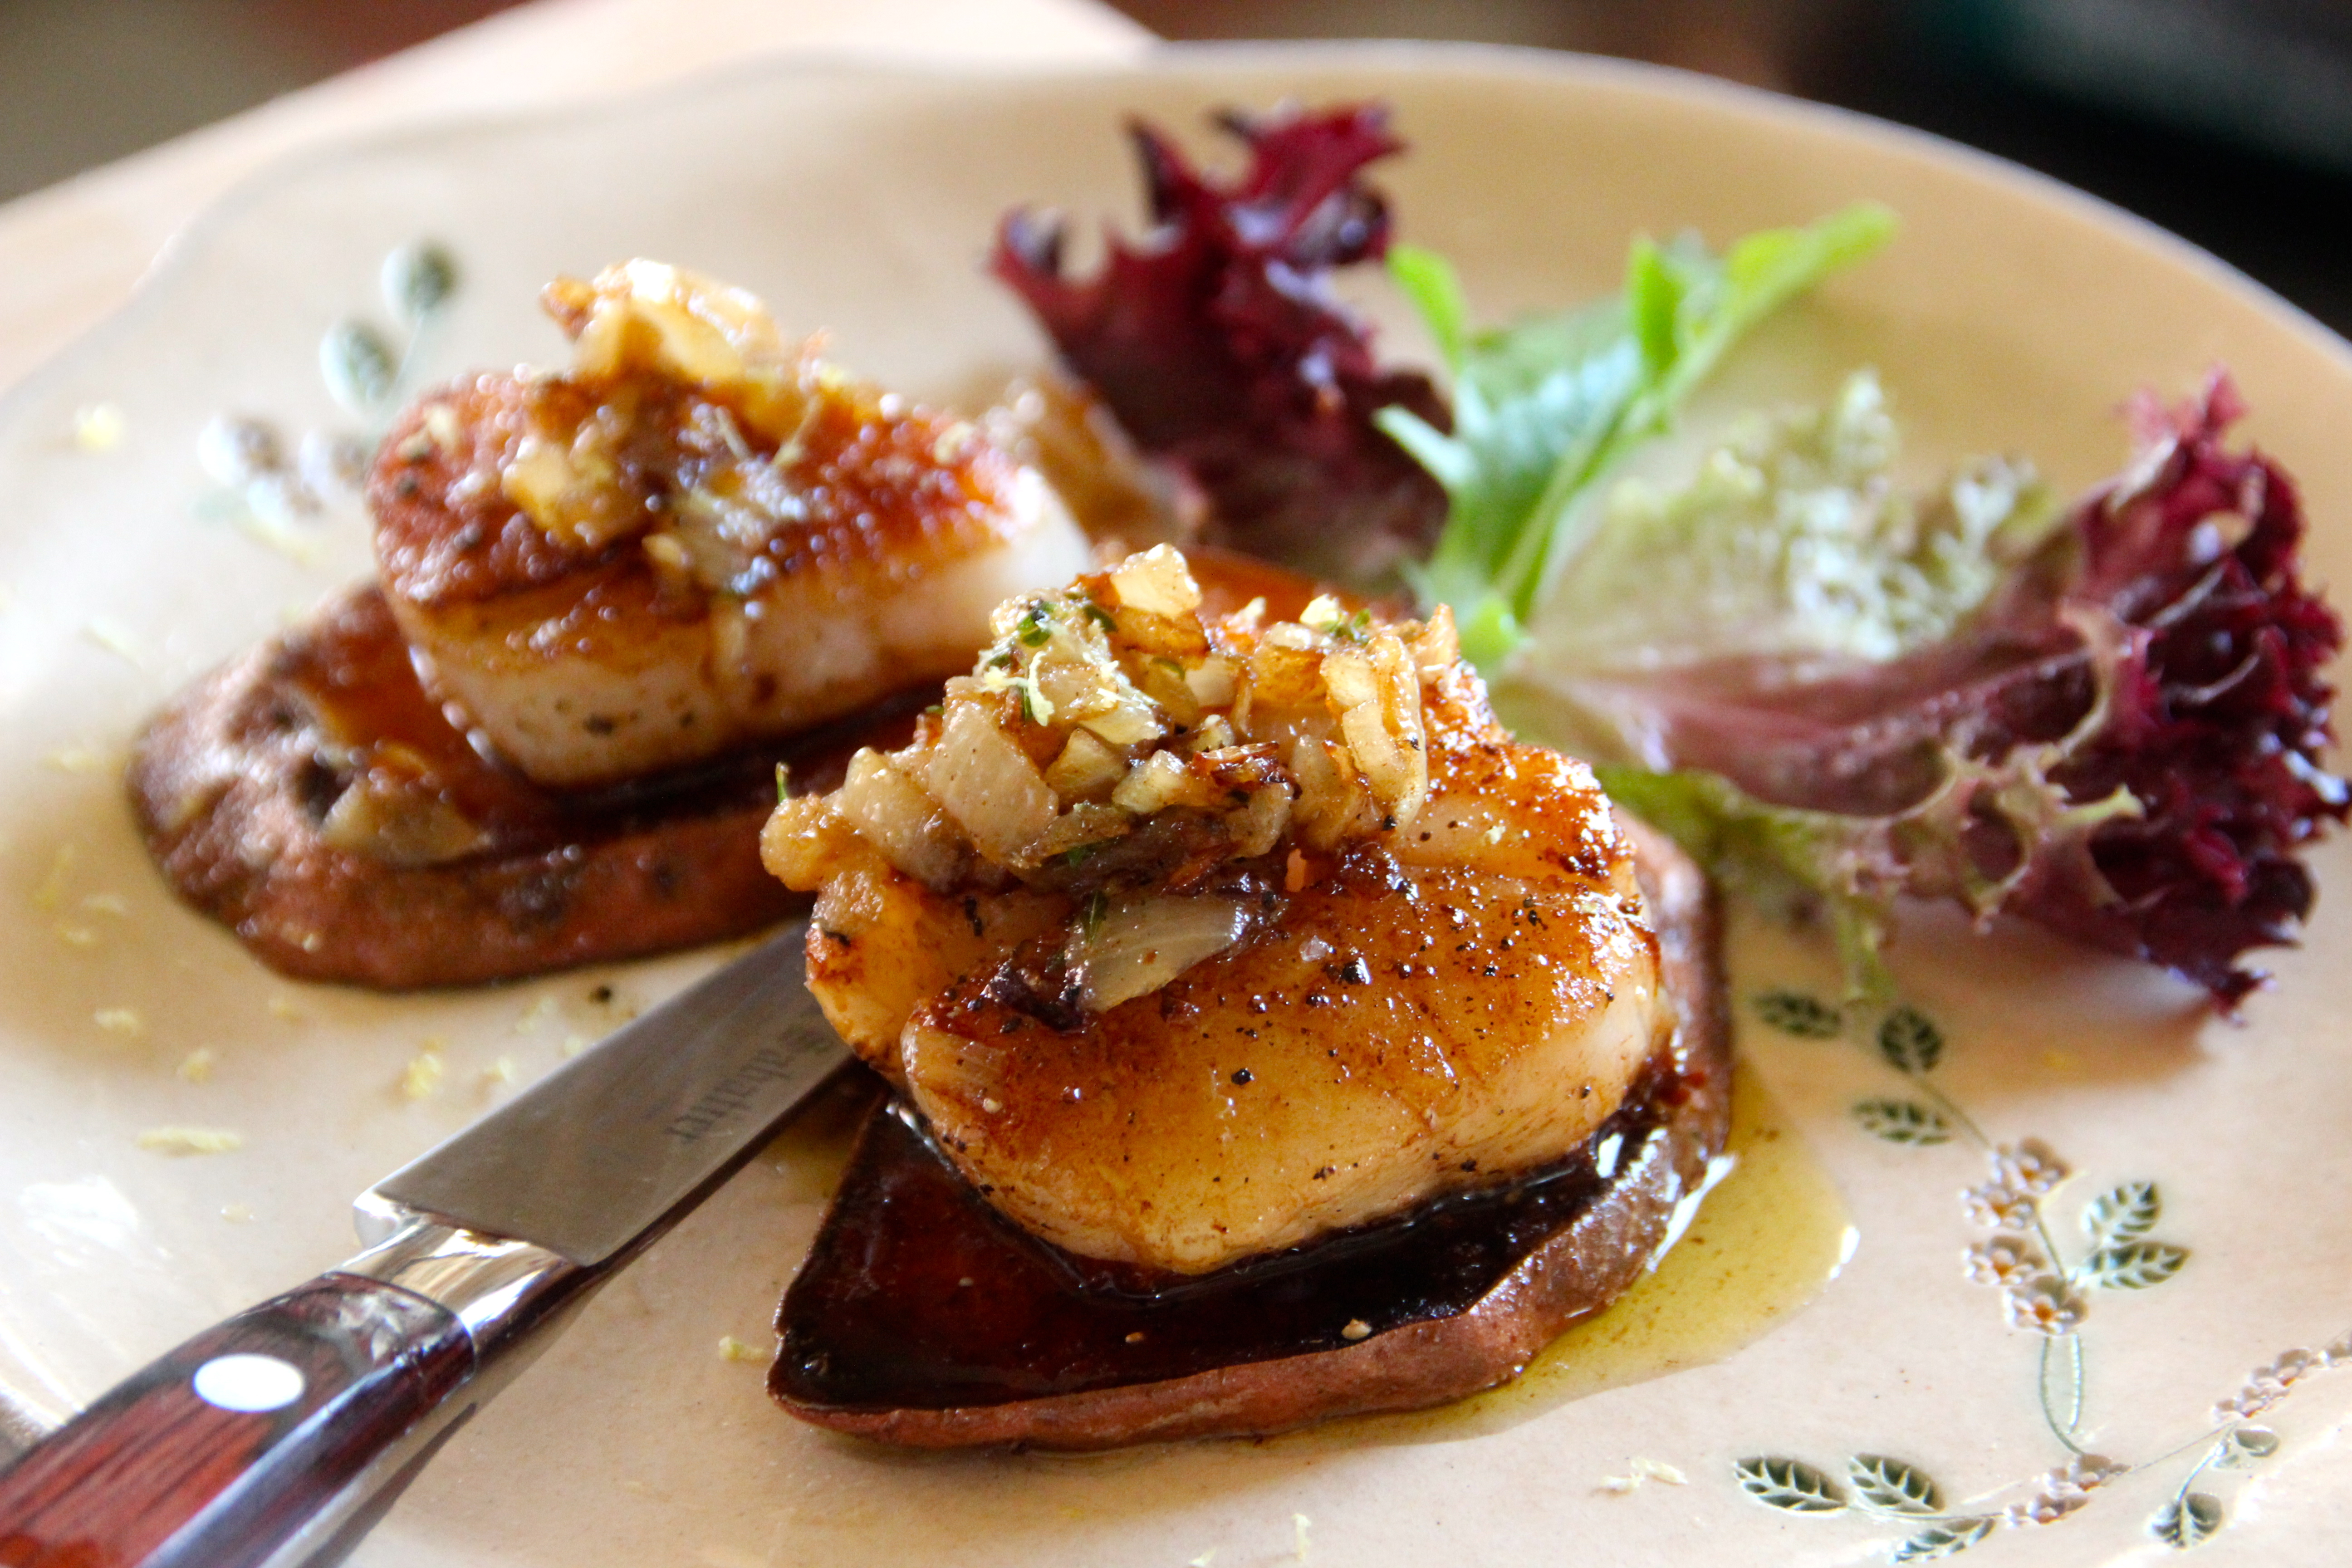 Scallops Sweet Potatoes French cuisine